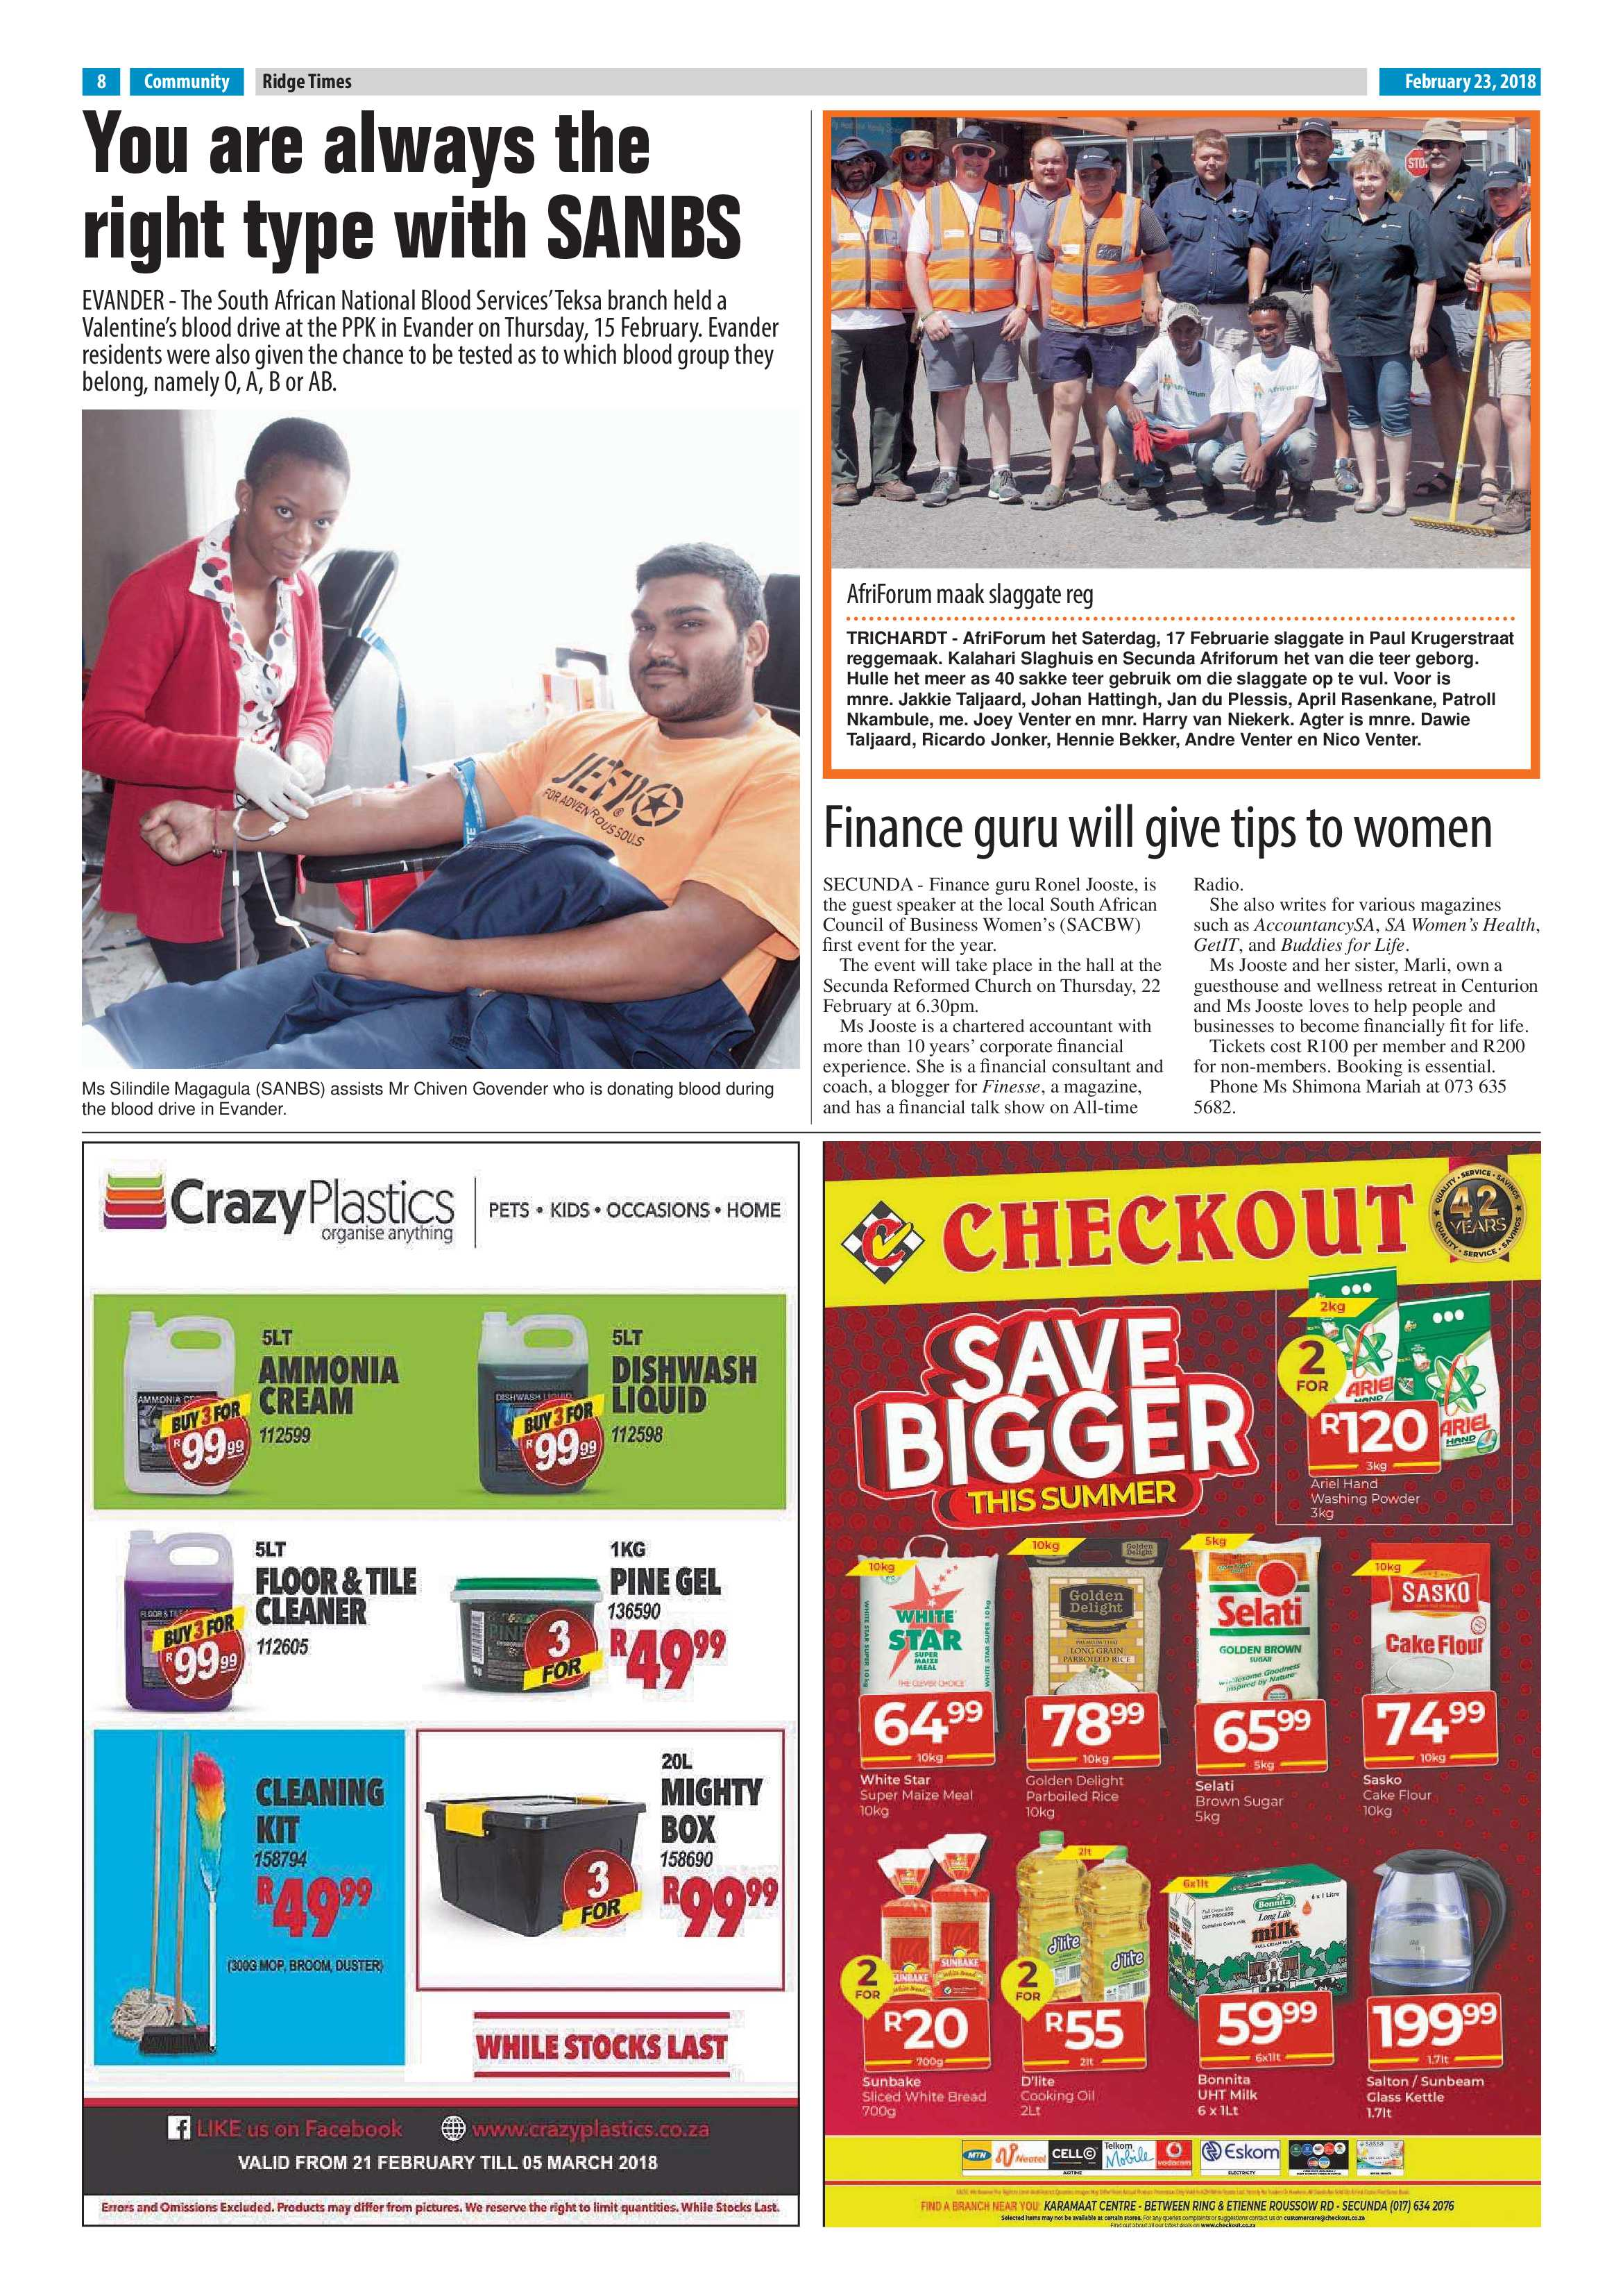 ridge-times-23-february-2018-epapers-page-8